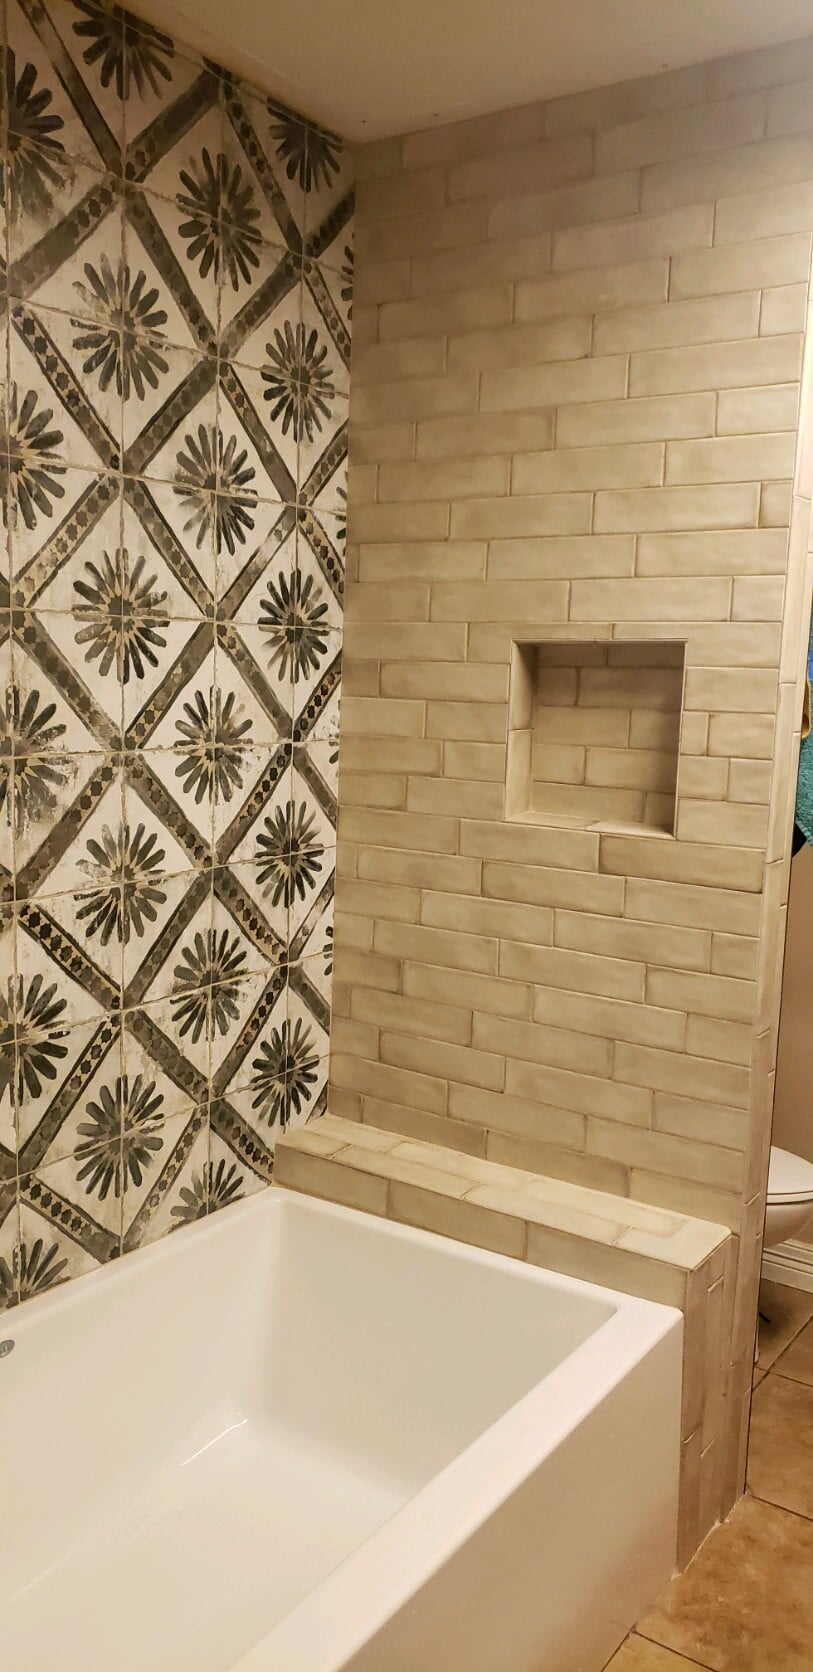 Rustic subway tile in Port Arthur, TX from Odile's Fine Flooring & Design